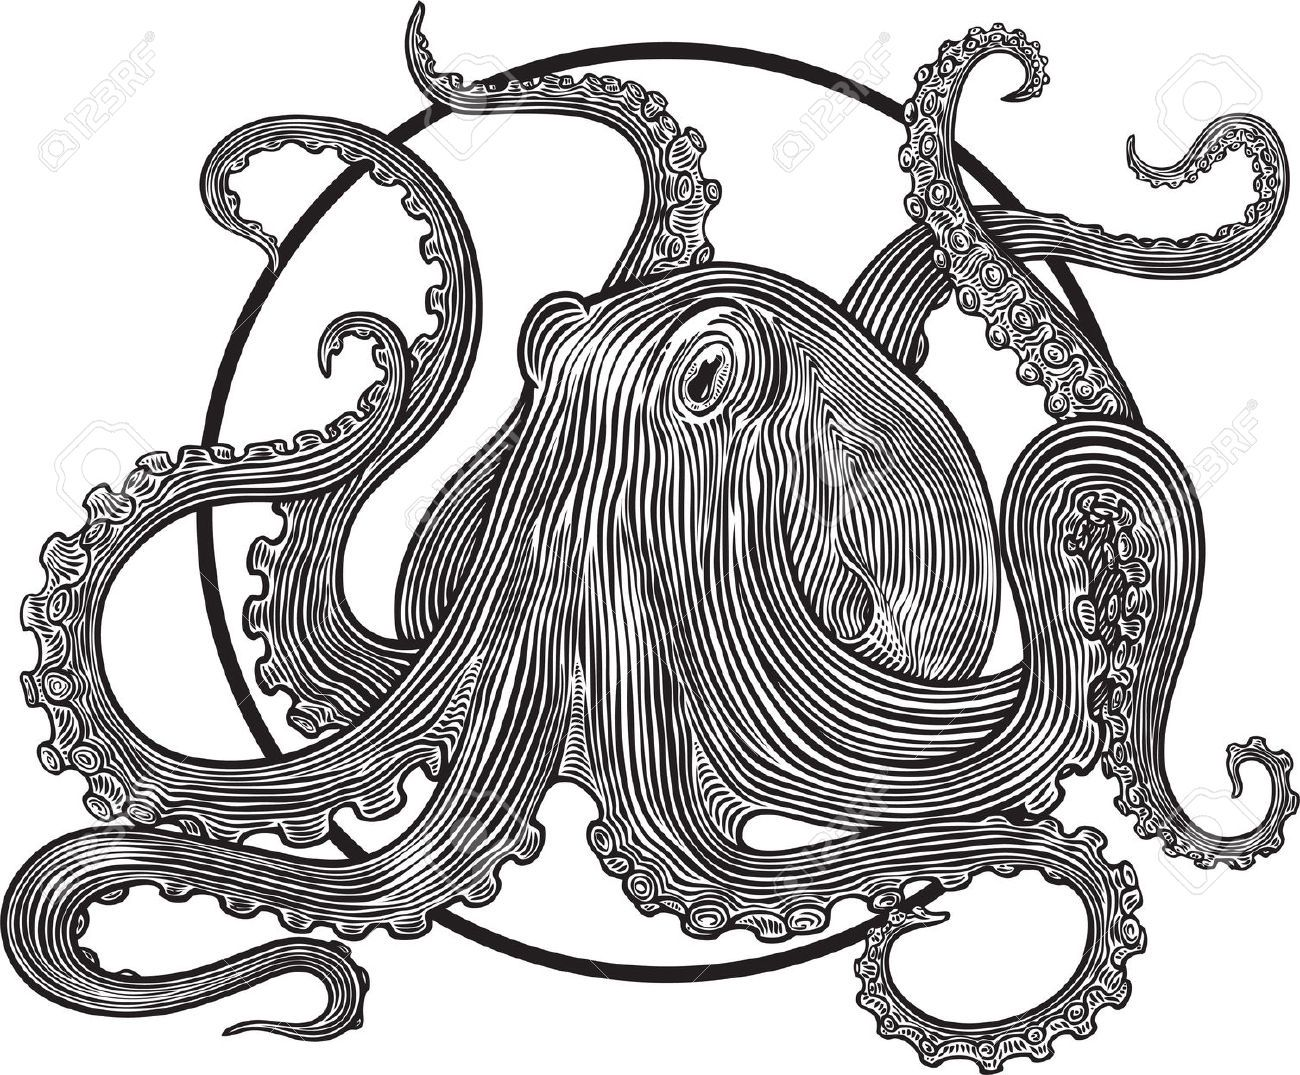 how to draw octopus tentacles